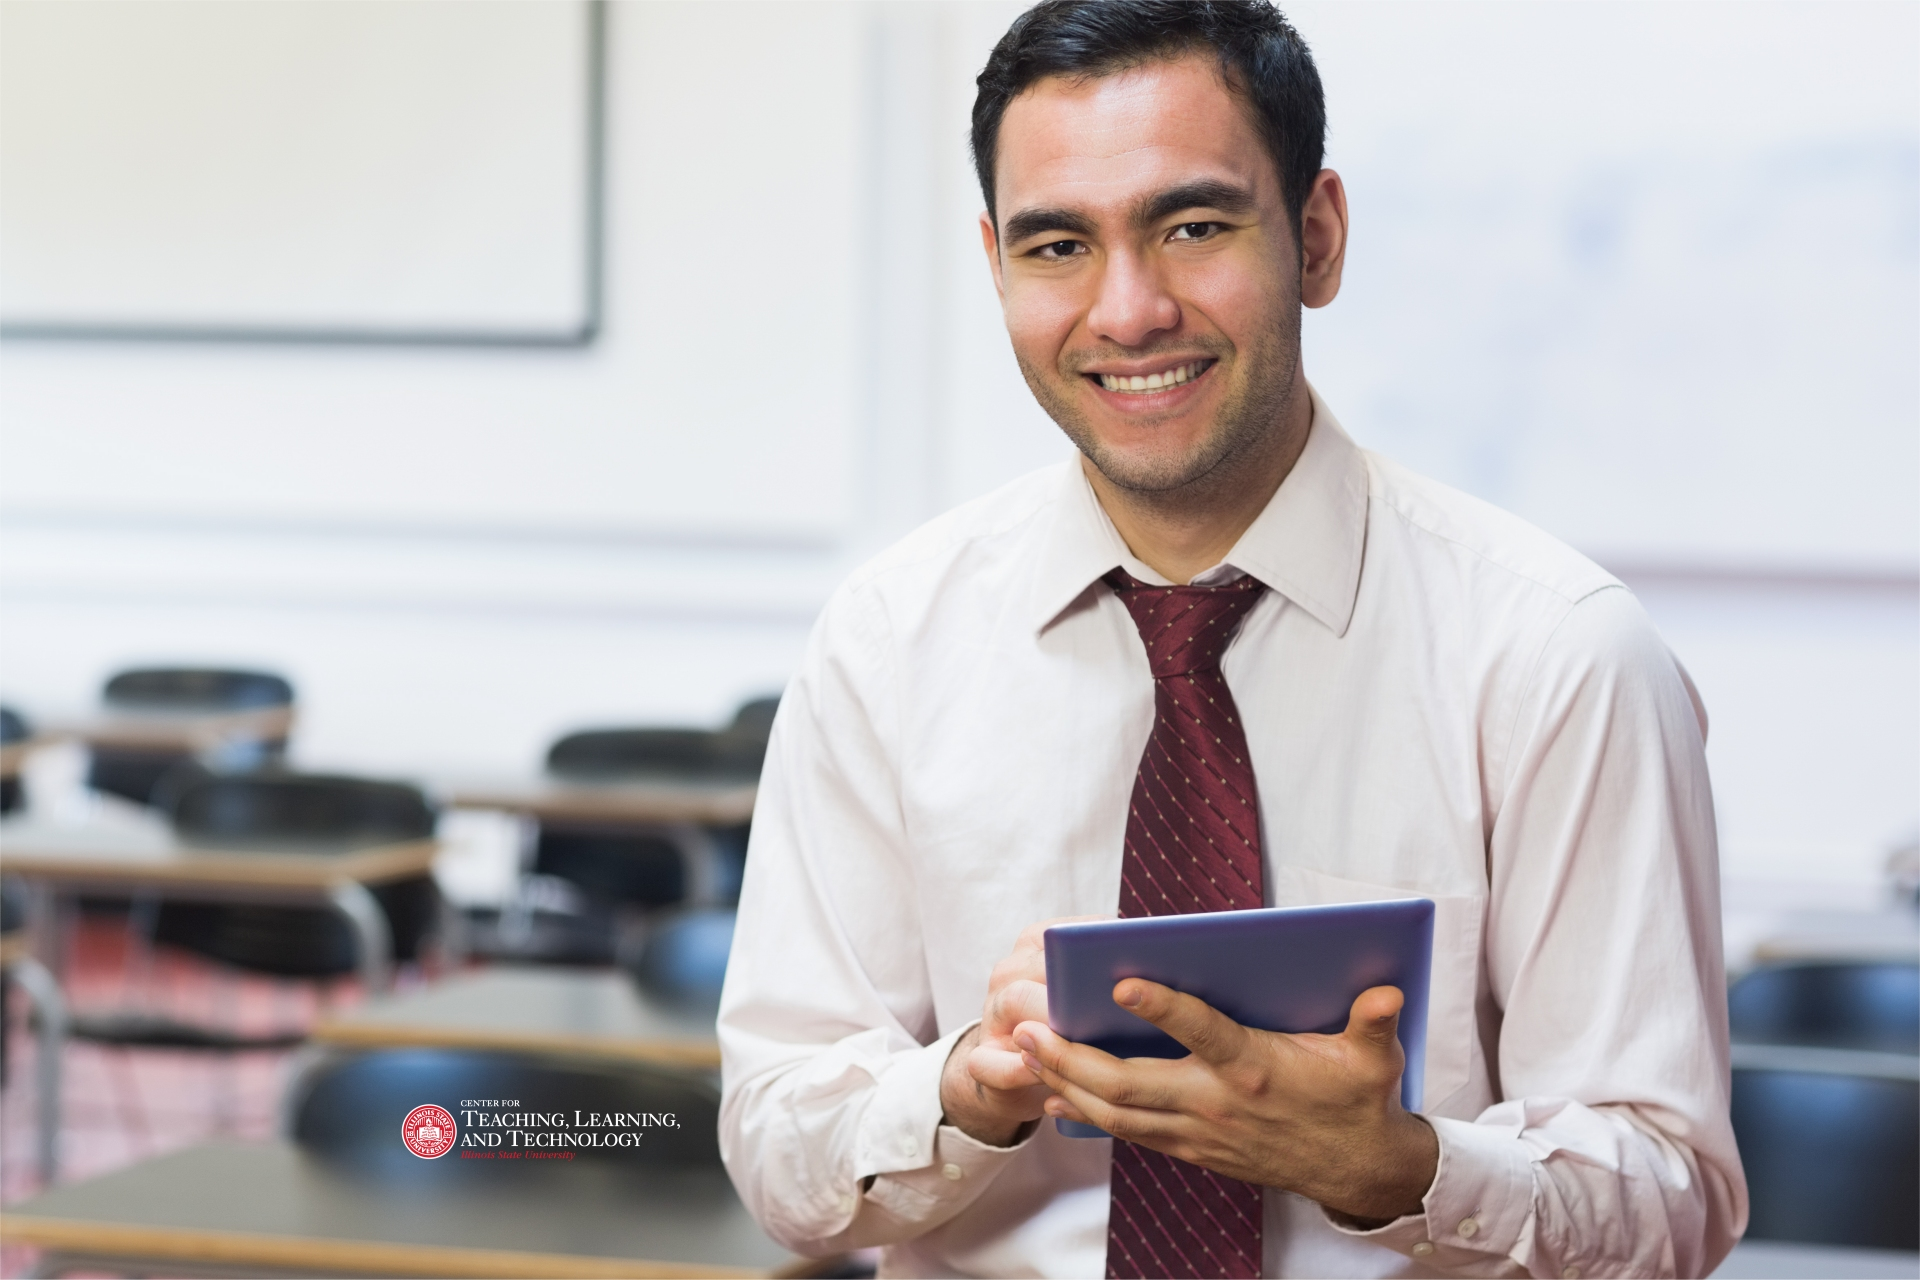 Instructor in empty class, smiling into the camera, holding a tablet device.